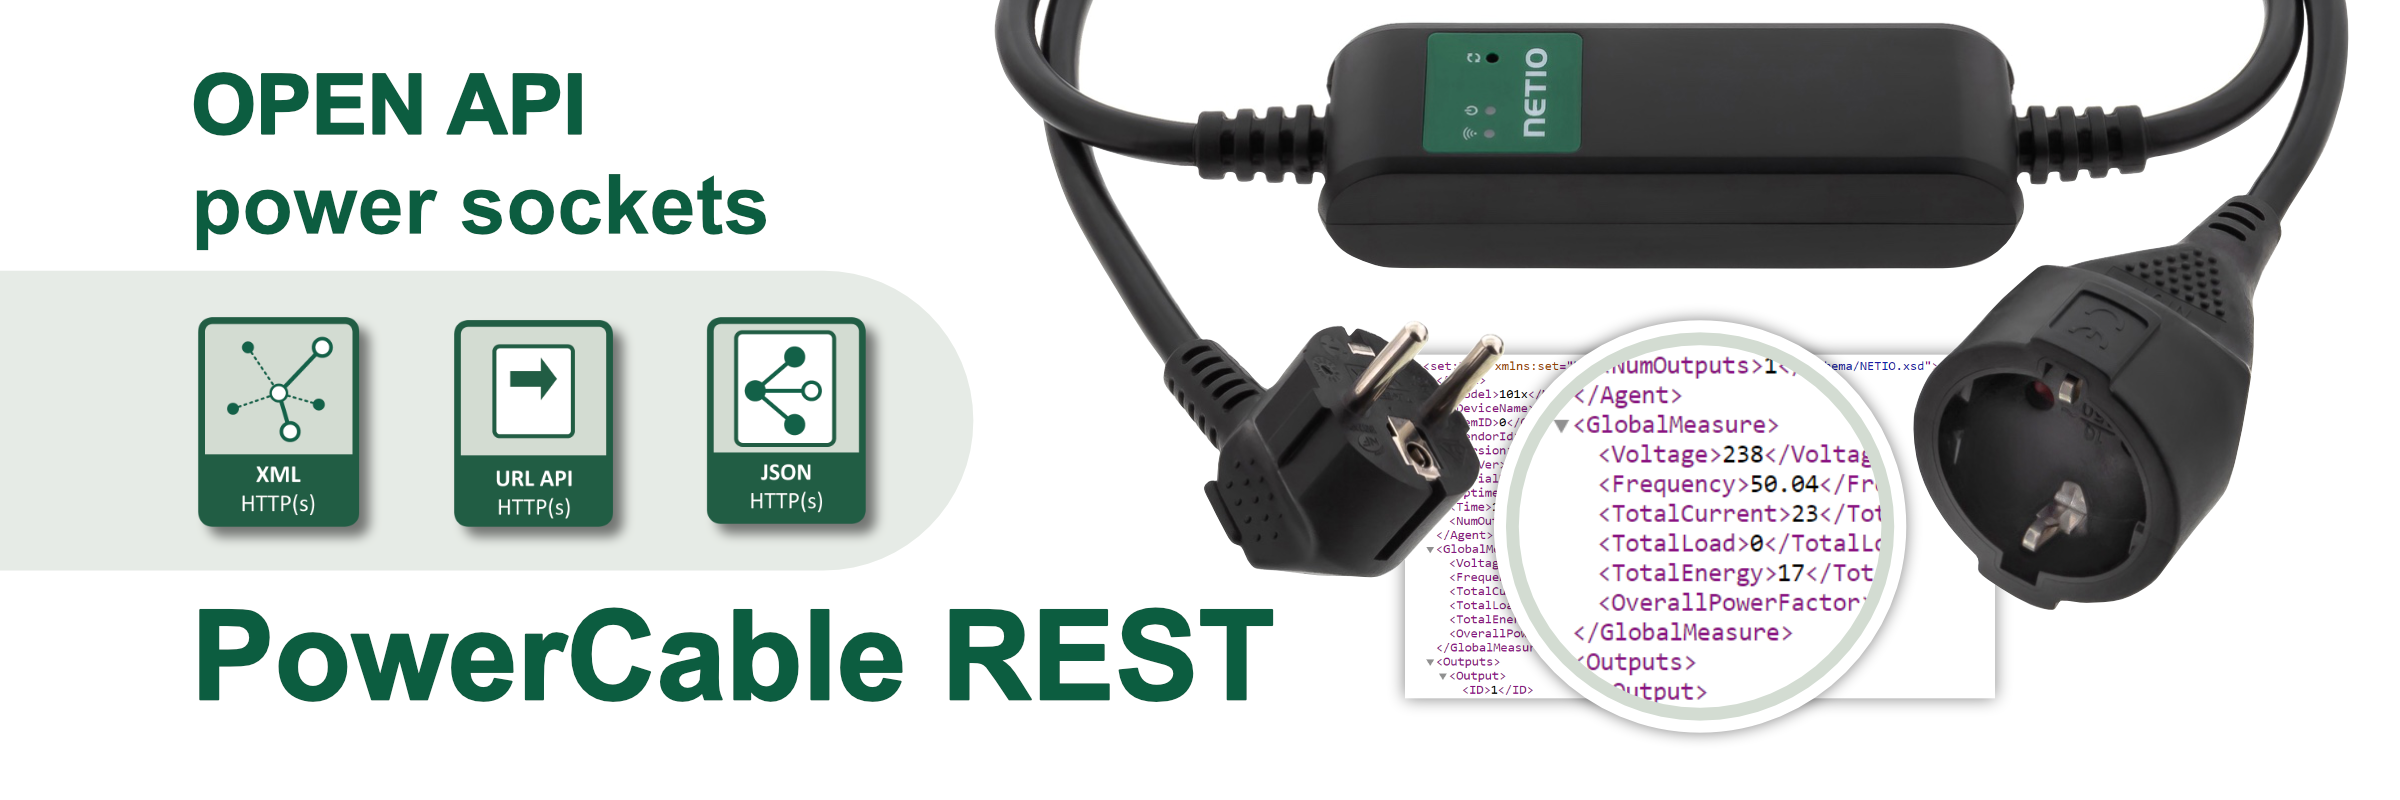 NETIO PowerCable REST 101x is a smart WiFi power socket by NETIO products. On/off over a web interface, electrical values (V, A, kWh, W, Hz, TruePF).